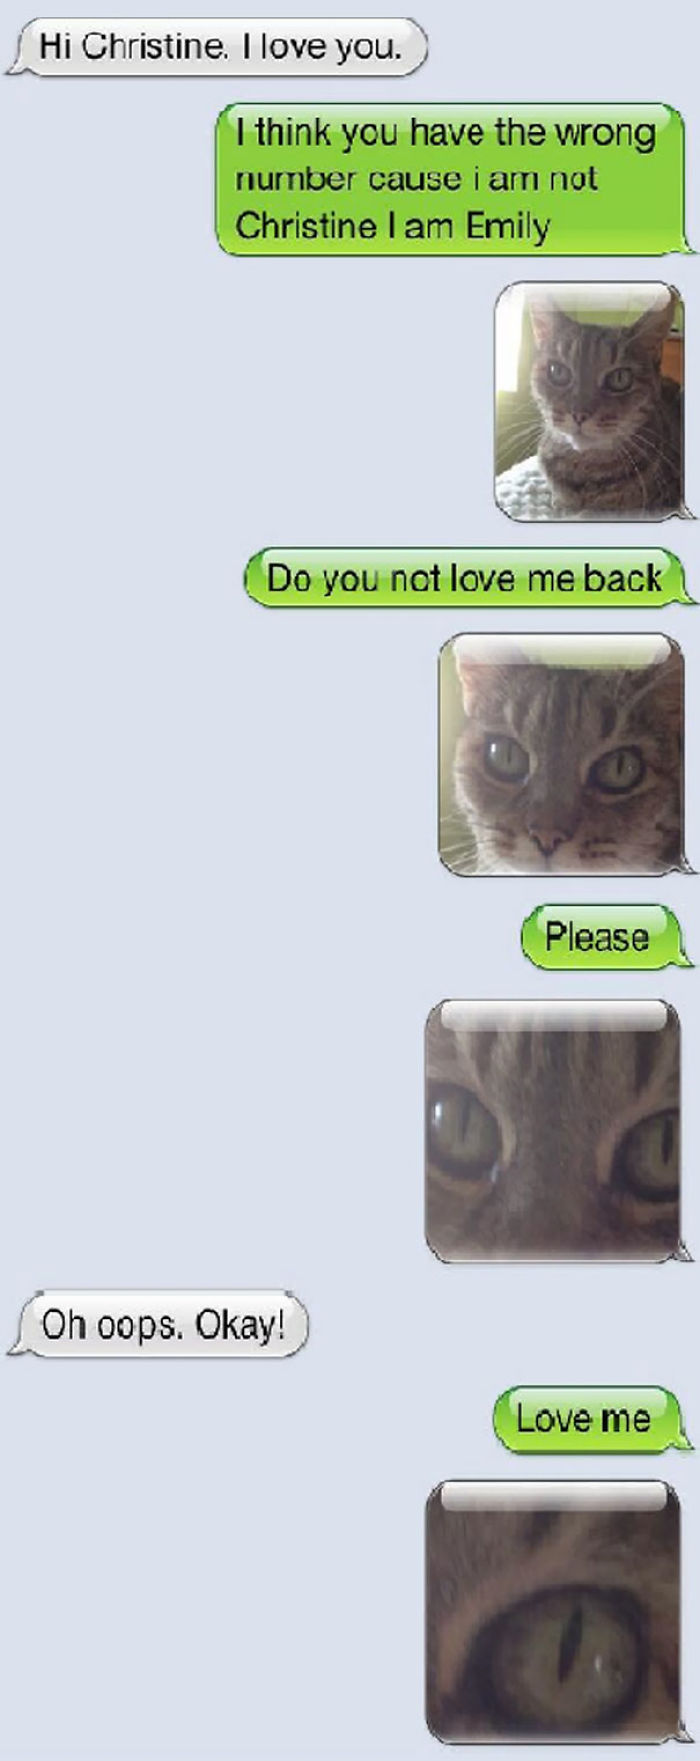 10 Most Hilarious Responses To Wrong Number Texts Demilked